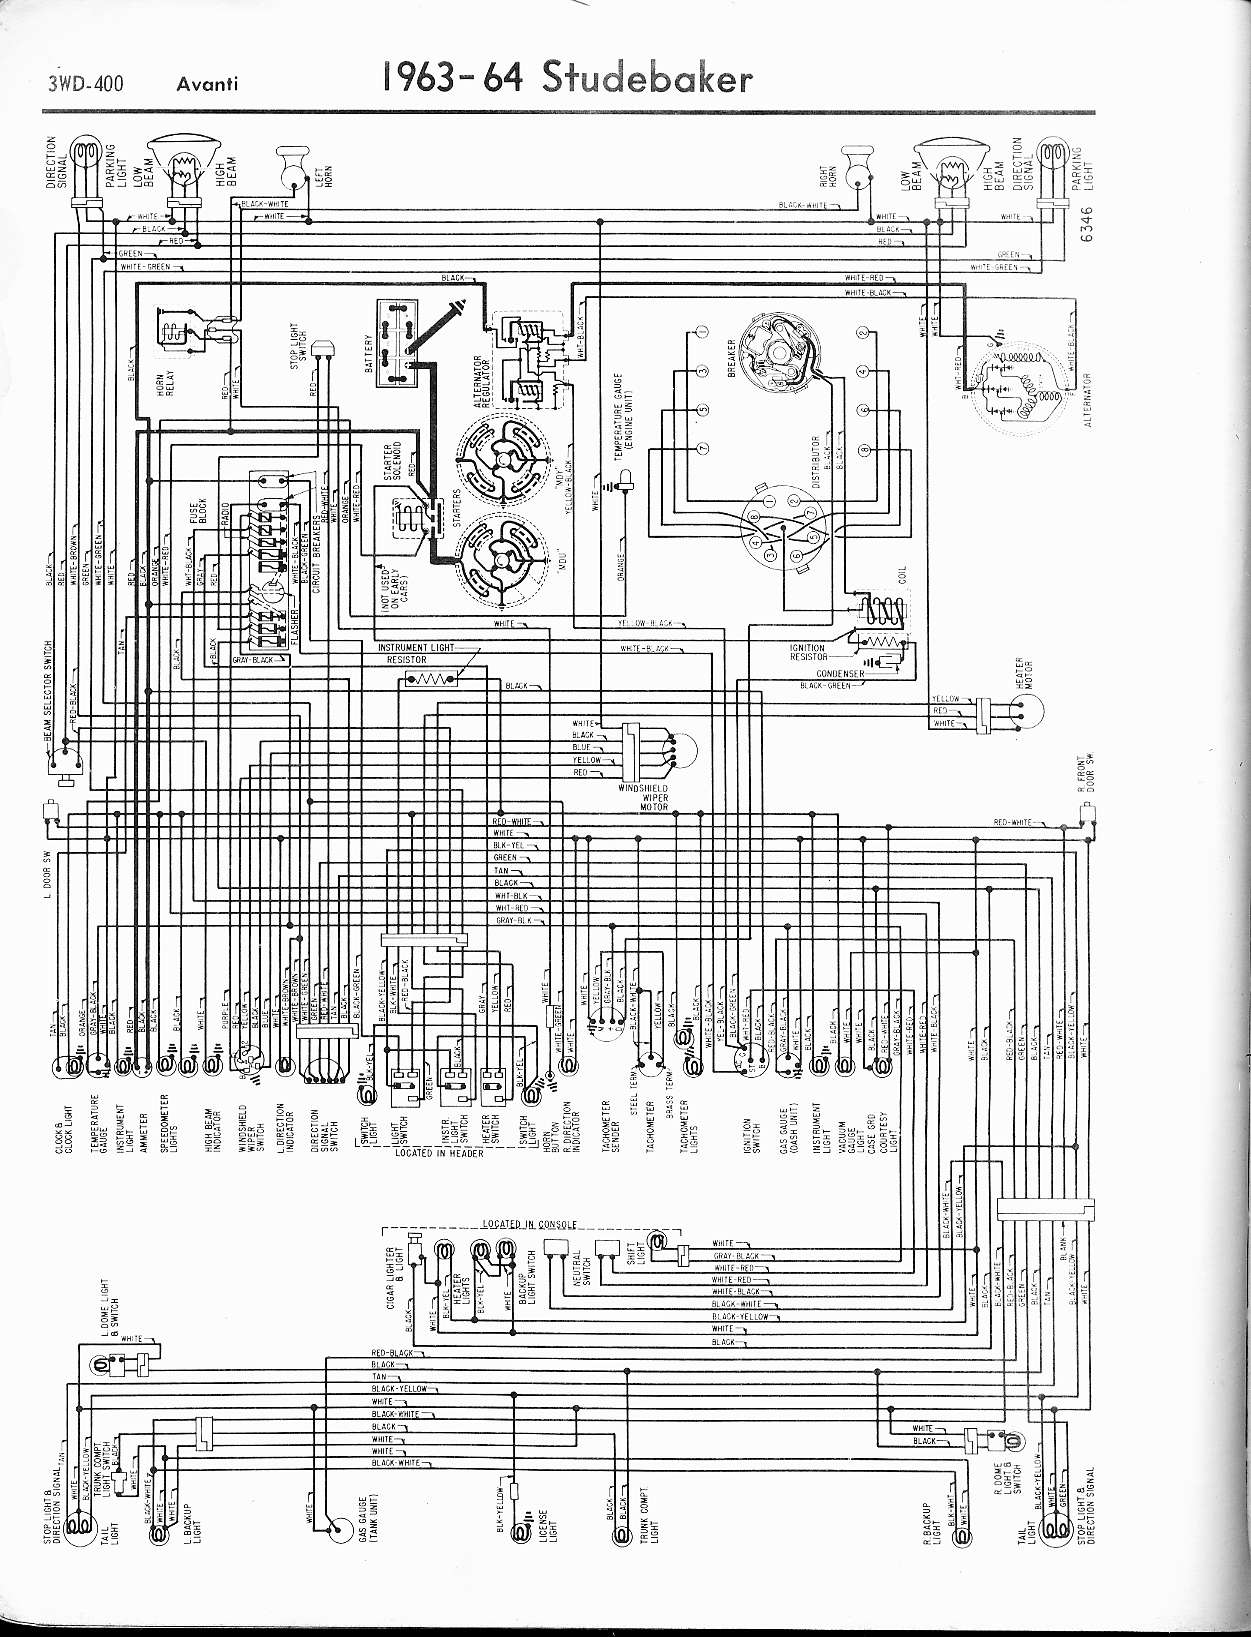 studebaker wiring diagrams the old car manual project 1965 6 cyl v8 · more stude wiring diagrams